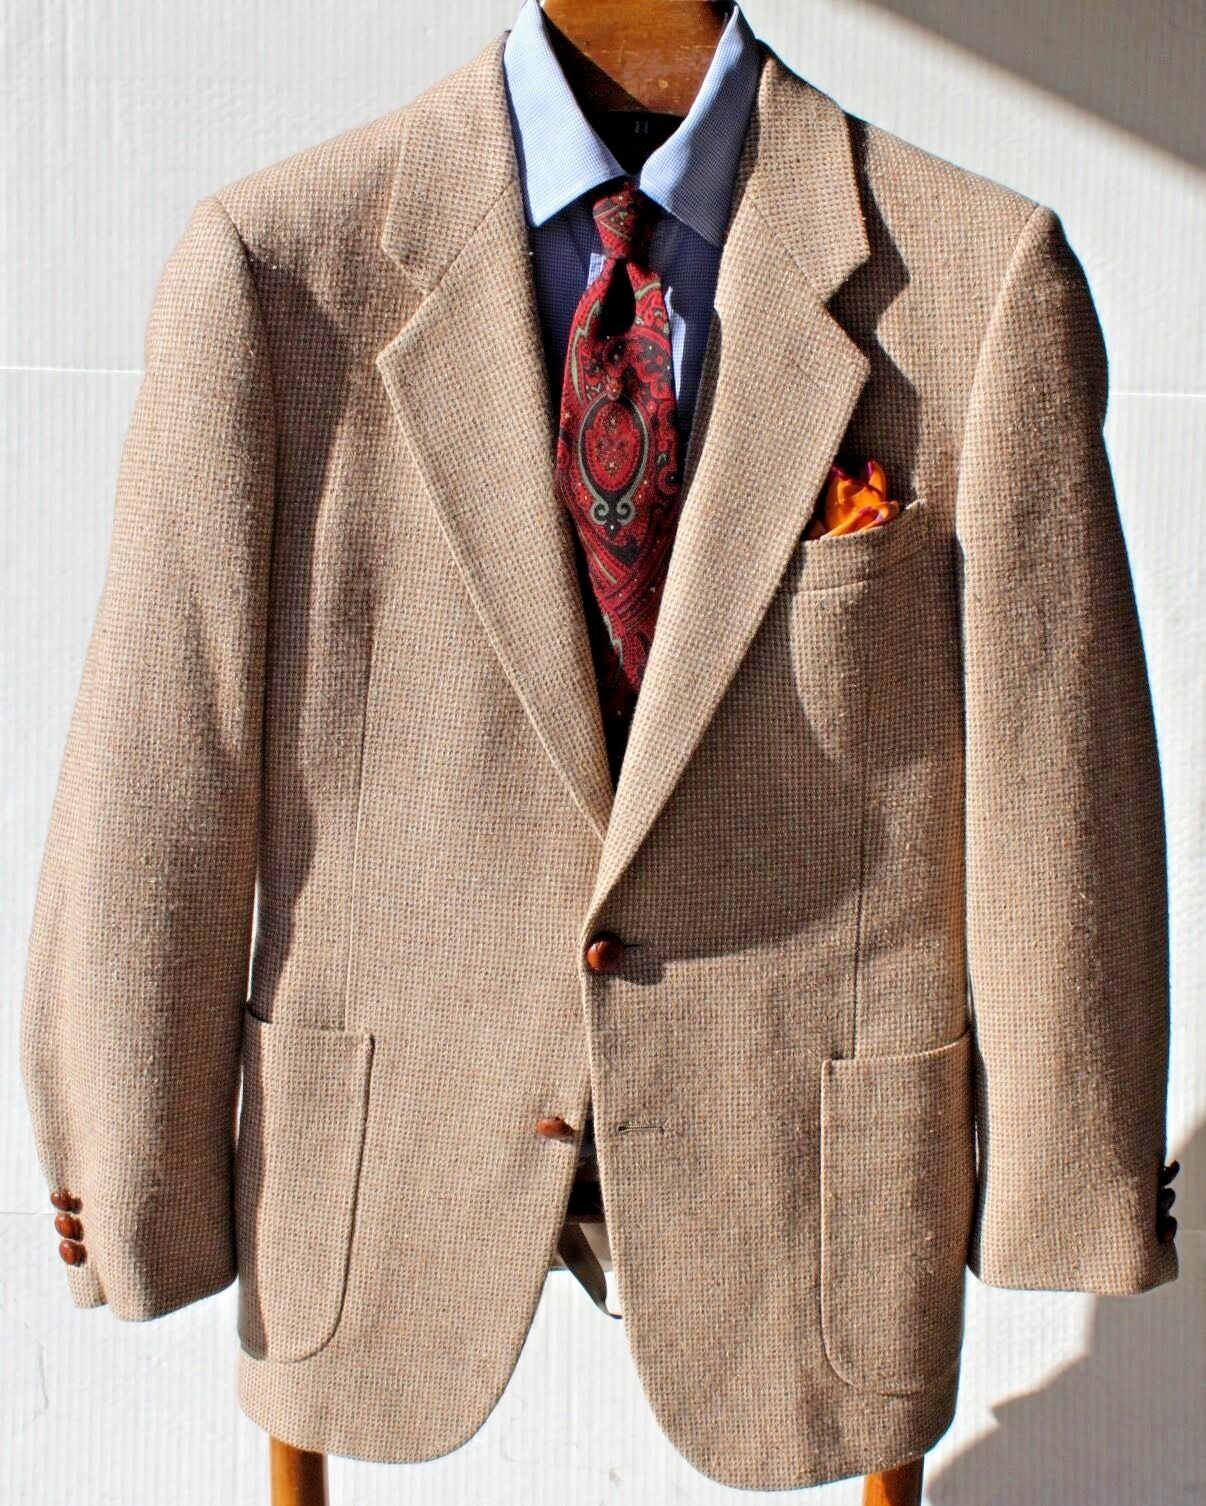 Malibu Clothes Beverly Hills Gent's 39R Fall Beige Tweed Wool & Silk Blazer